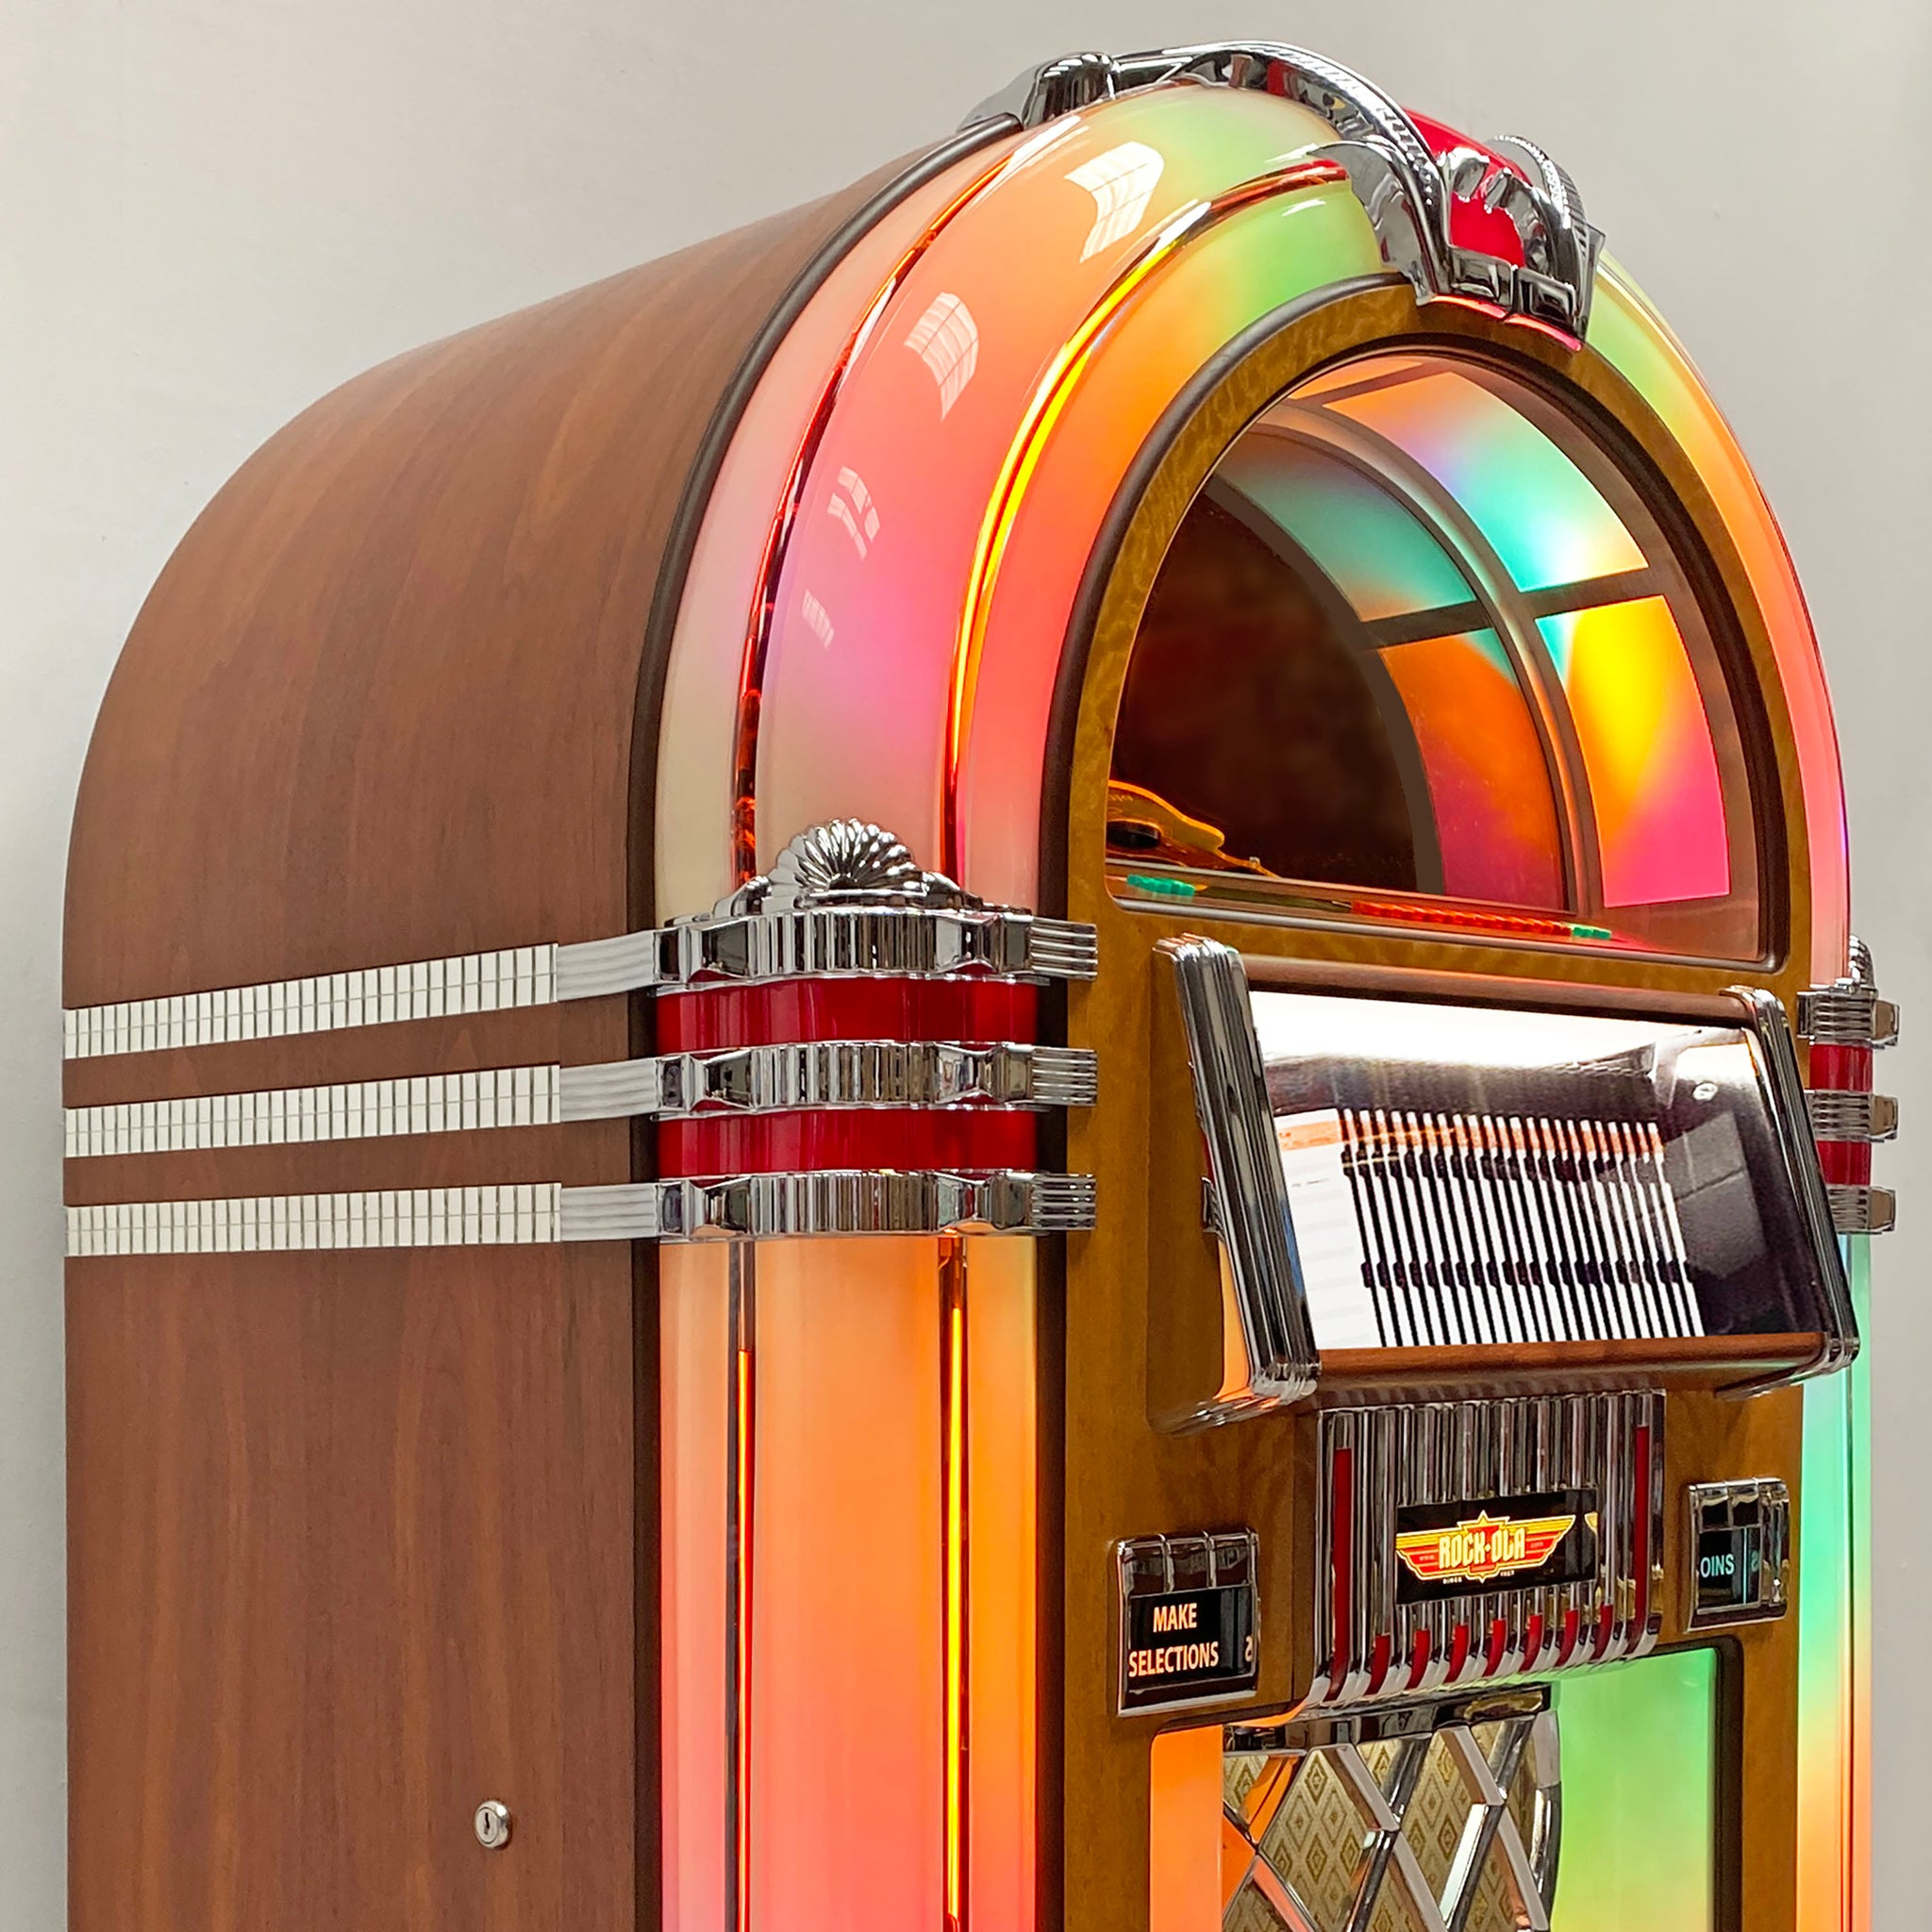 Rock-Ola Bubbler CD Jukebox in Walnut